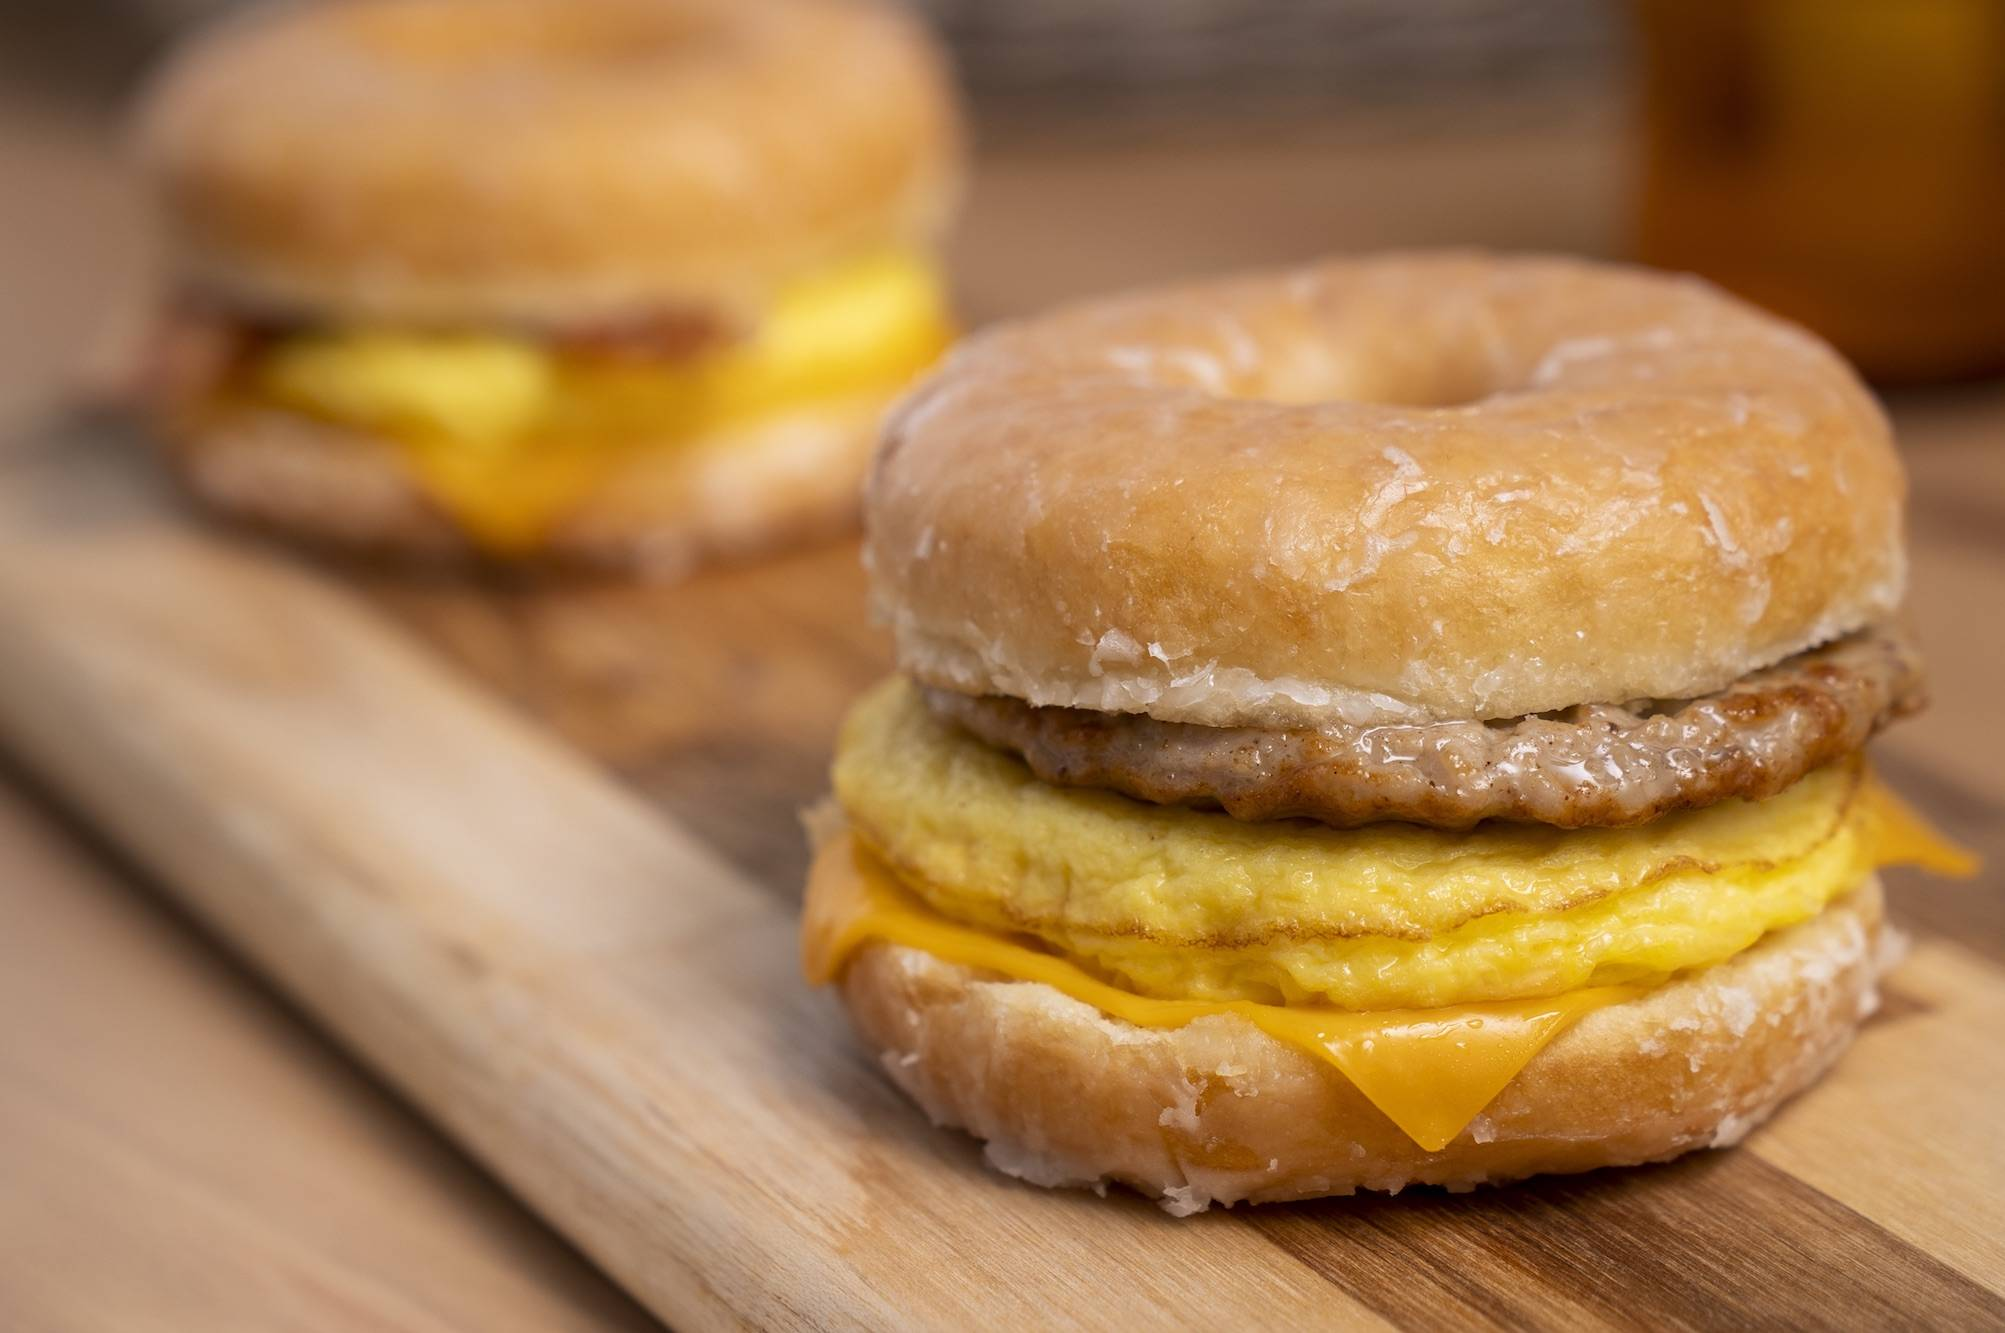 Tim Hortons offers limited-edition breakfast to celebrate National Donut Day Friday